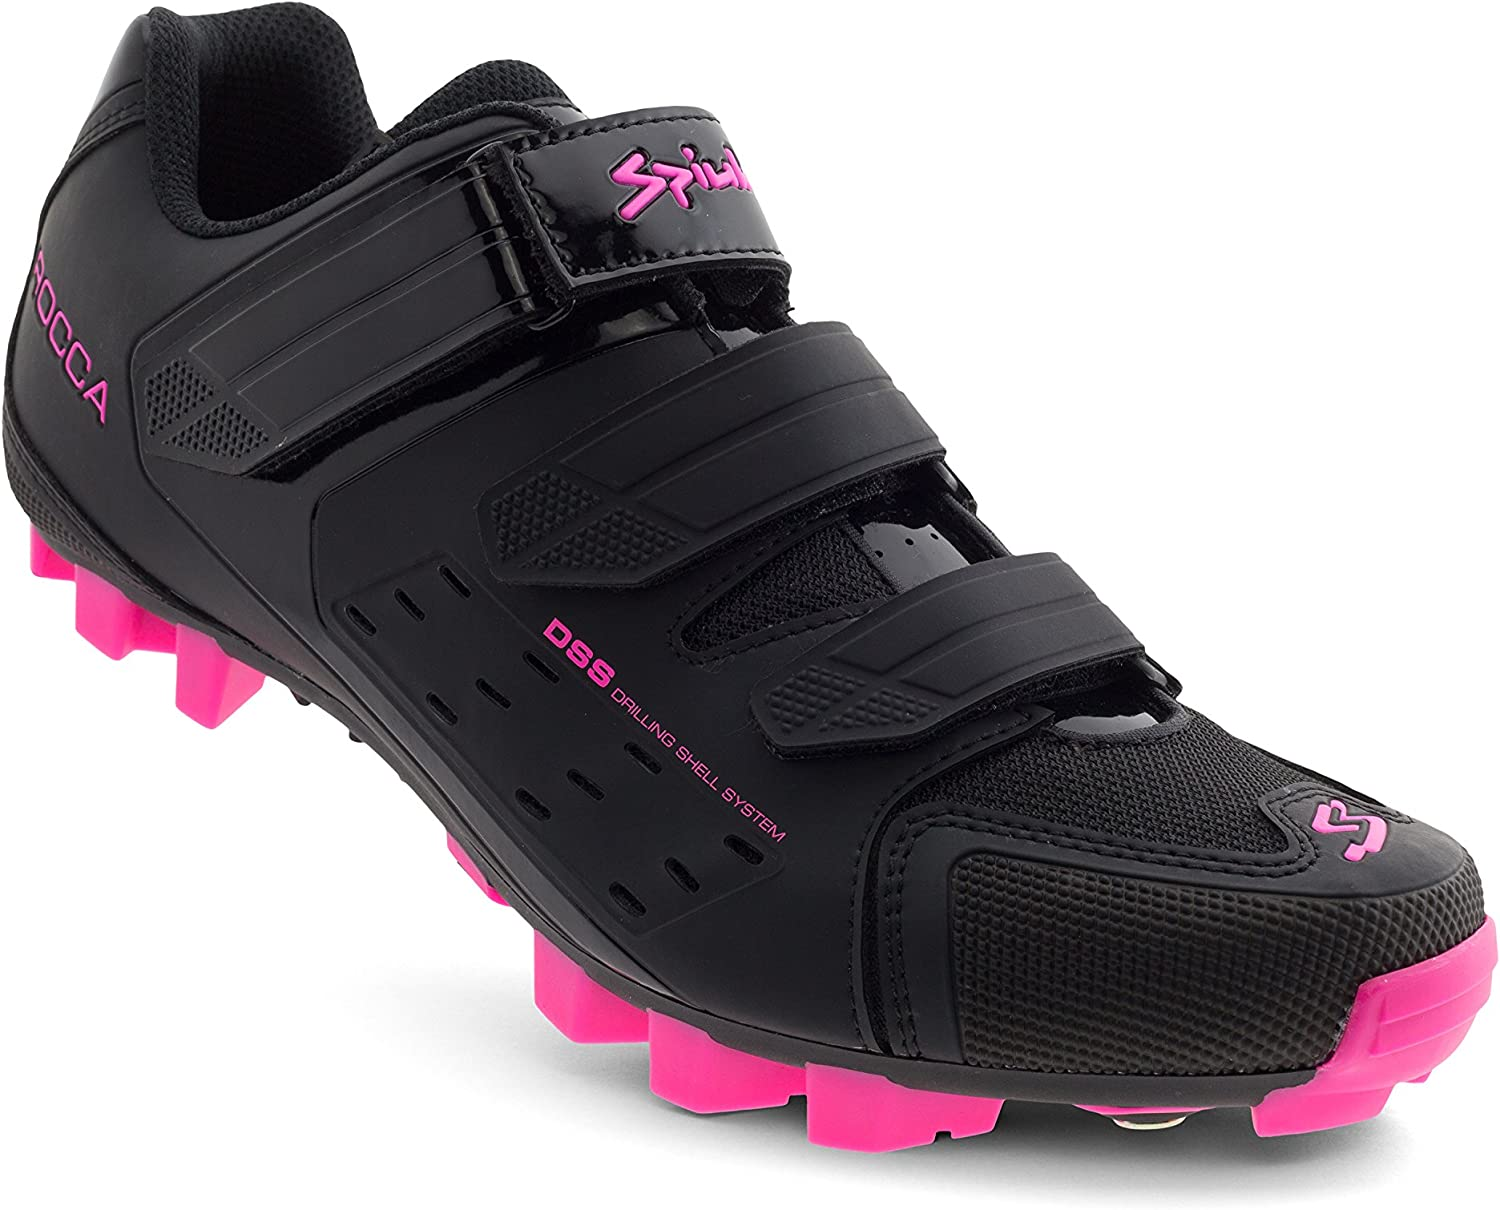 Spiuk Rocca MTB shoes, Unisex Adult